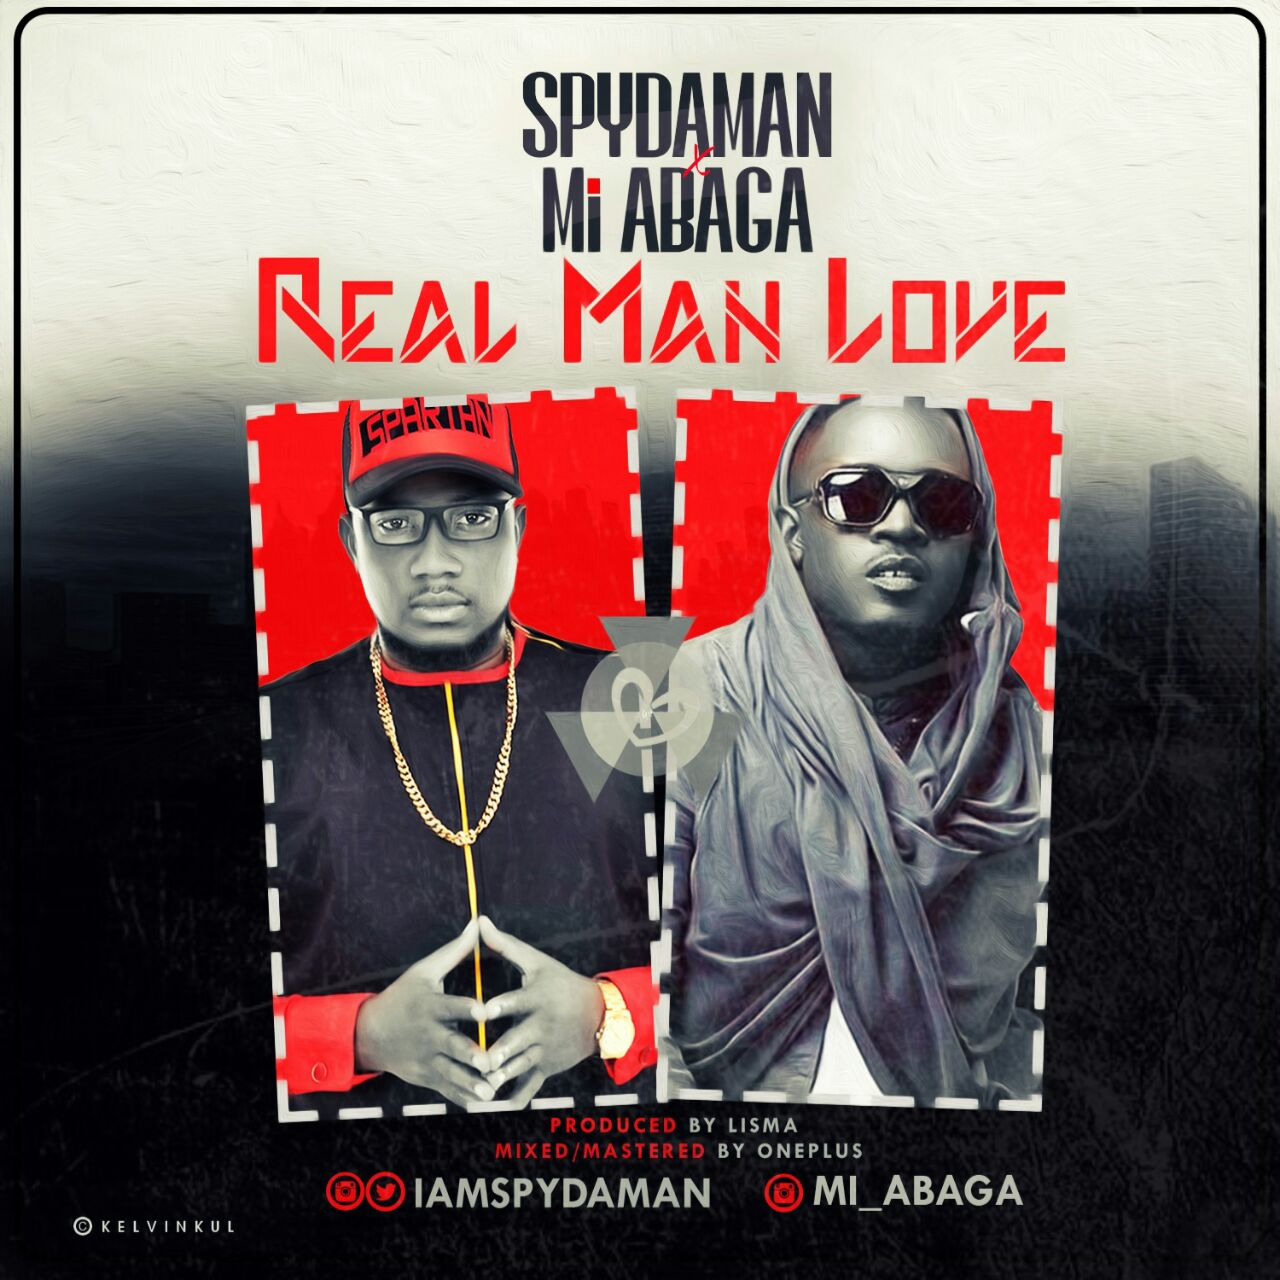 SpyDaMan ft. M.I Abaga – Real Man Love (prod. Lisman)